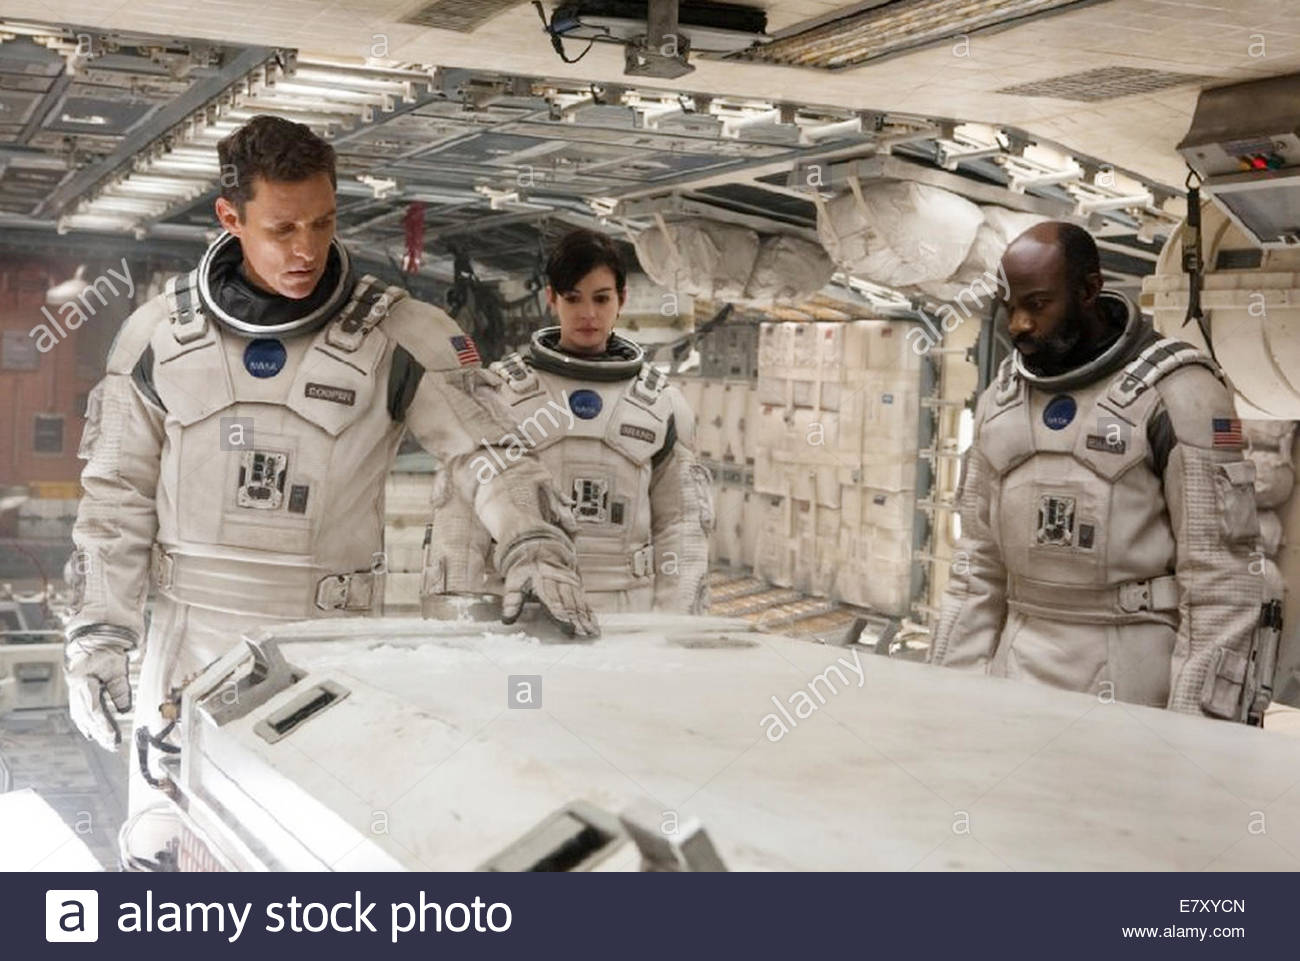 INTERSTELLAR 2014 Paramount Pictures film with from left: Matthew McConaughey, Anne Hathaway and David Oyelowo - Stock Image